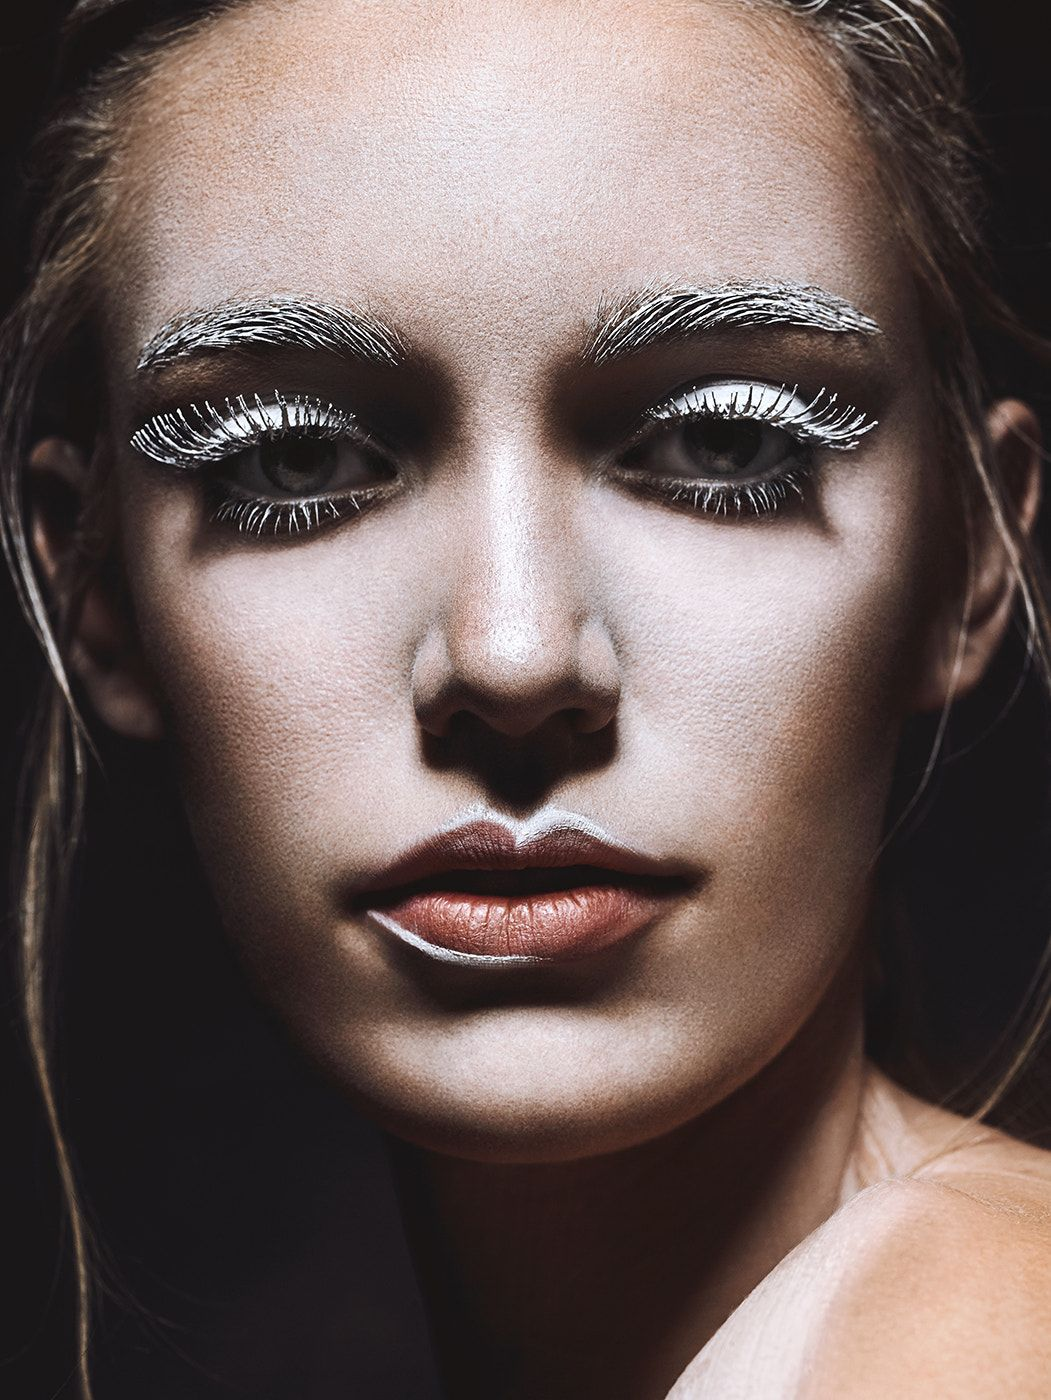 Pin by WhuDat on Photo shoot ideas Halloween face makeup